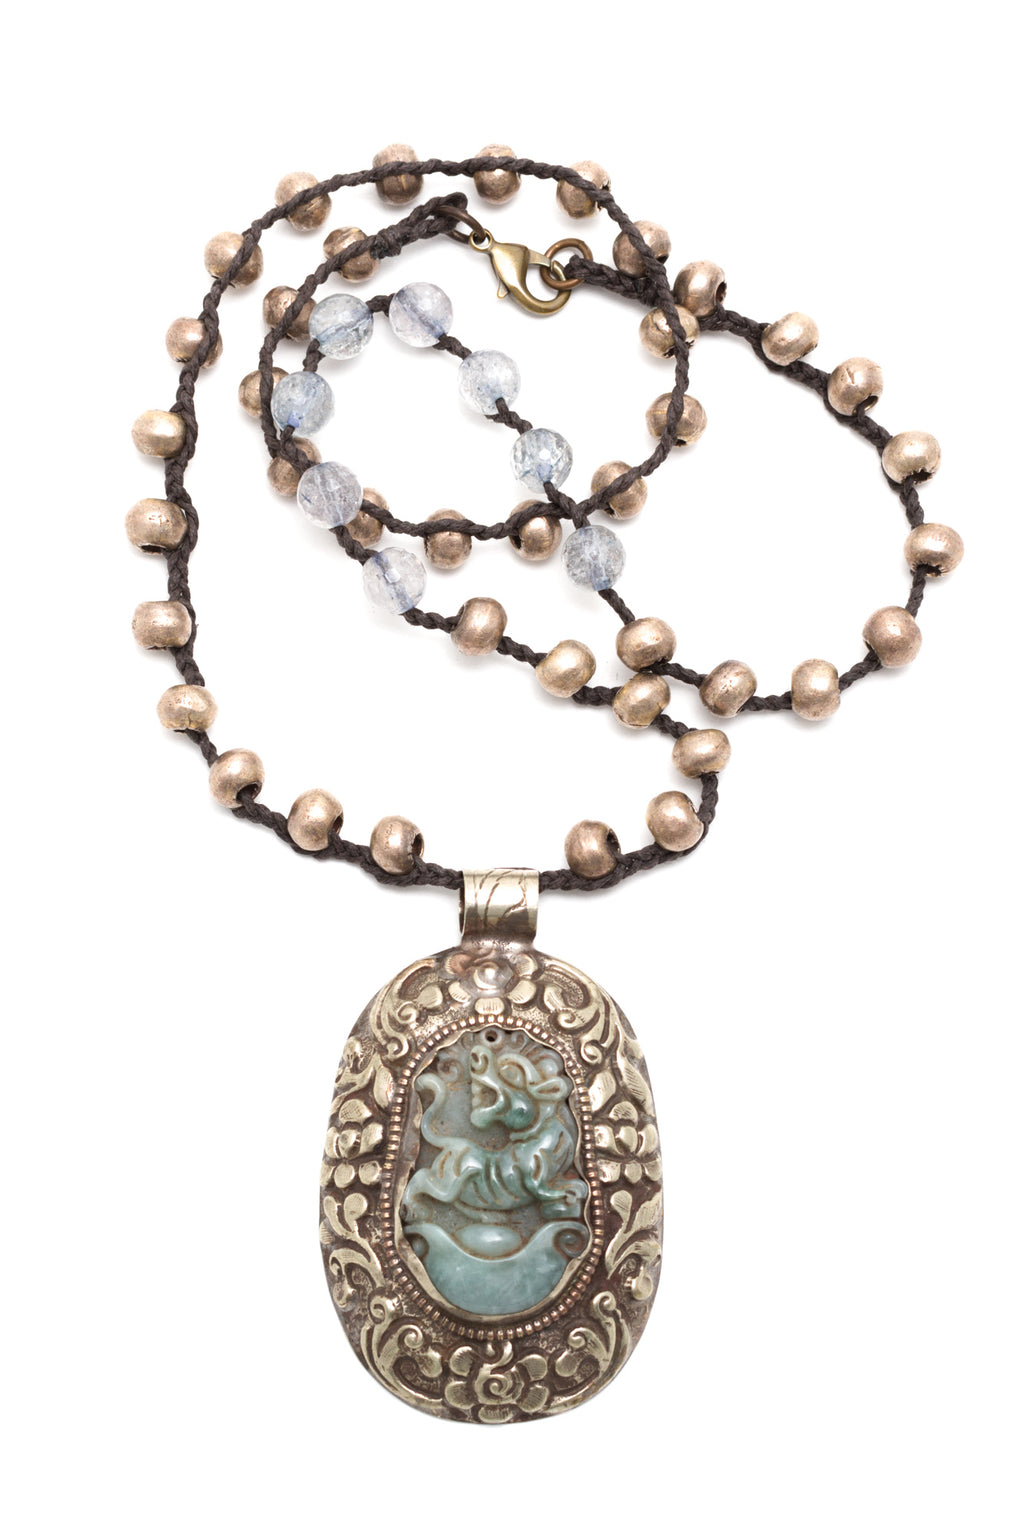 Carved Jade Pendant w/Silver African Beads